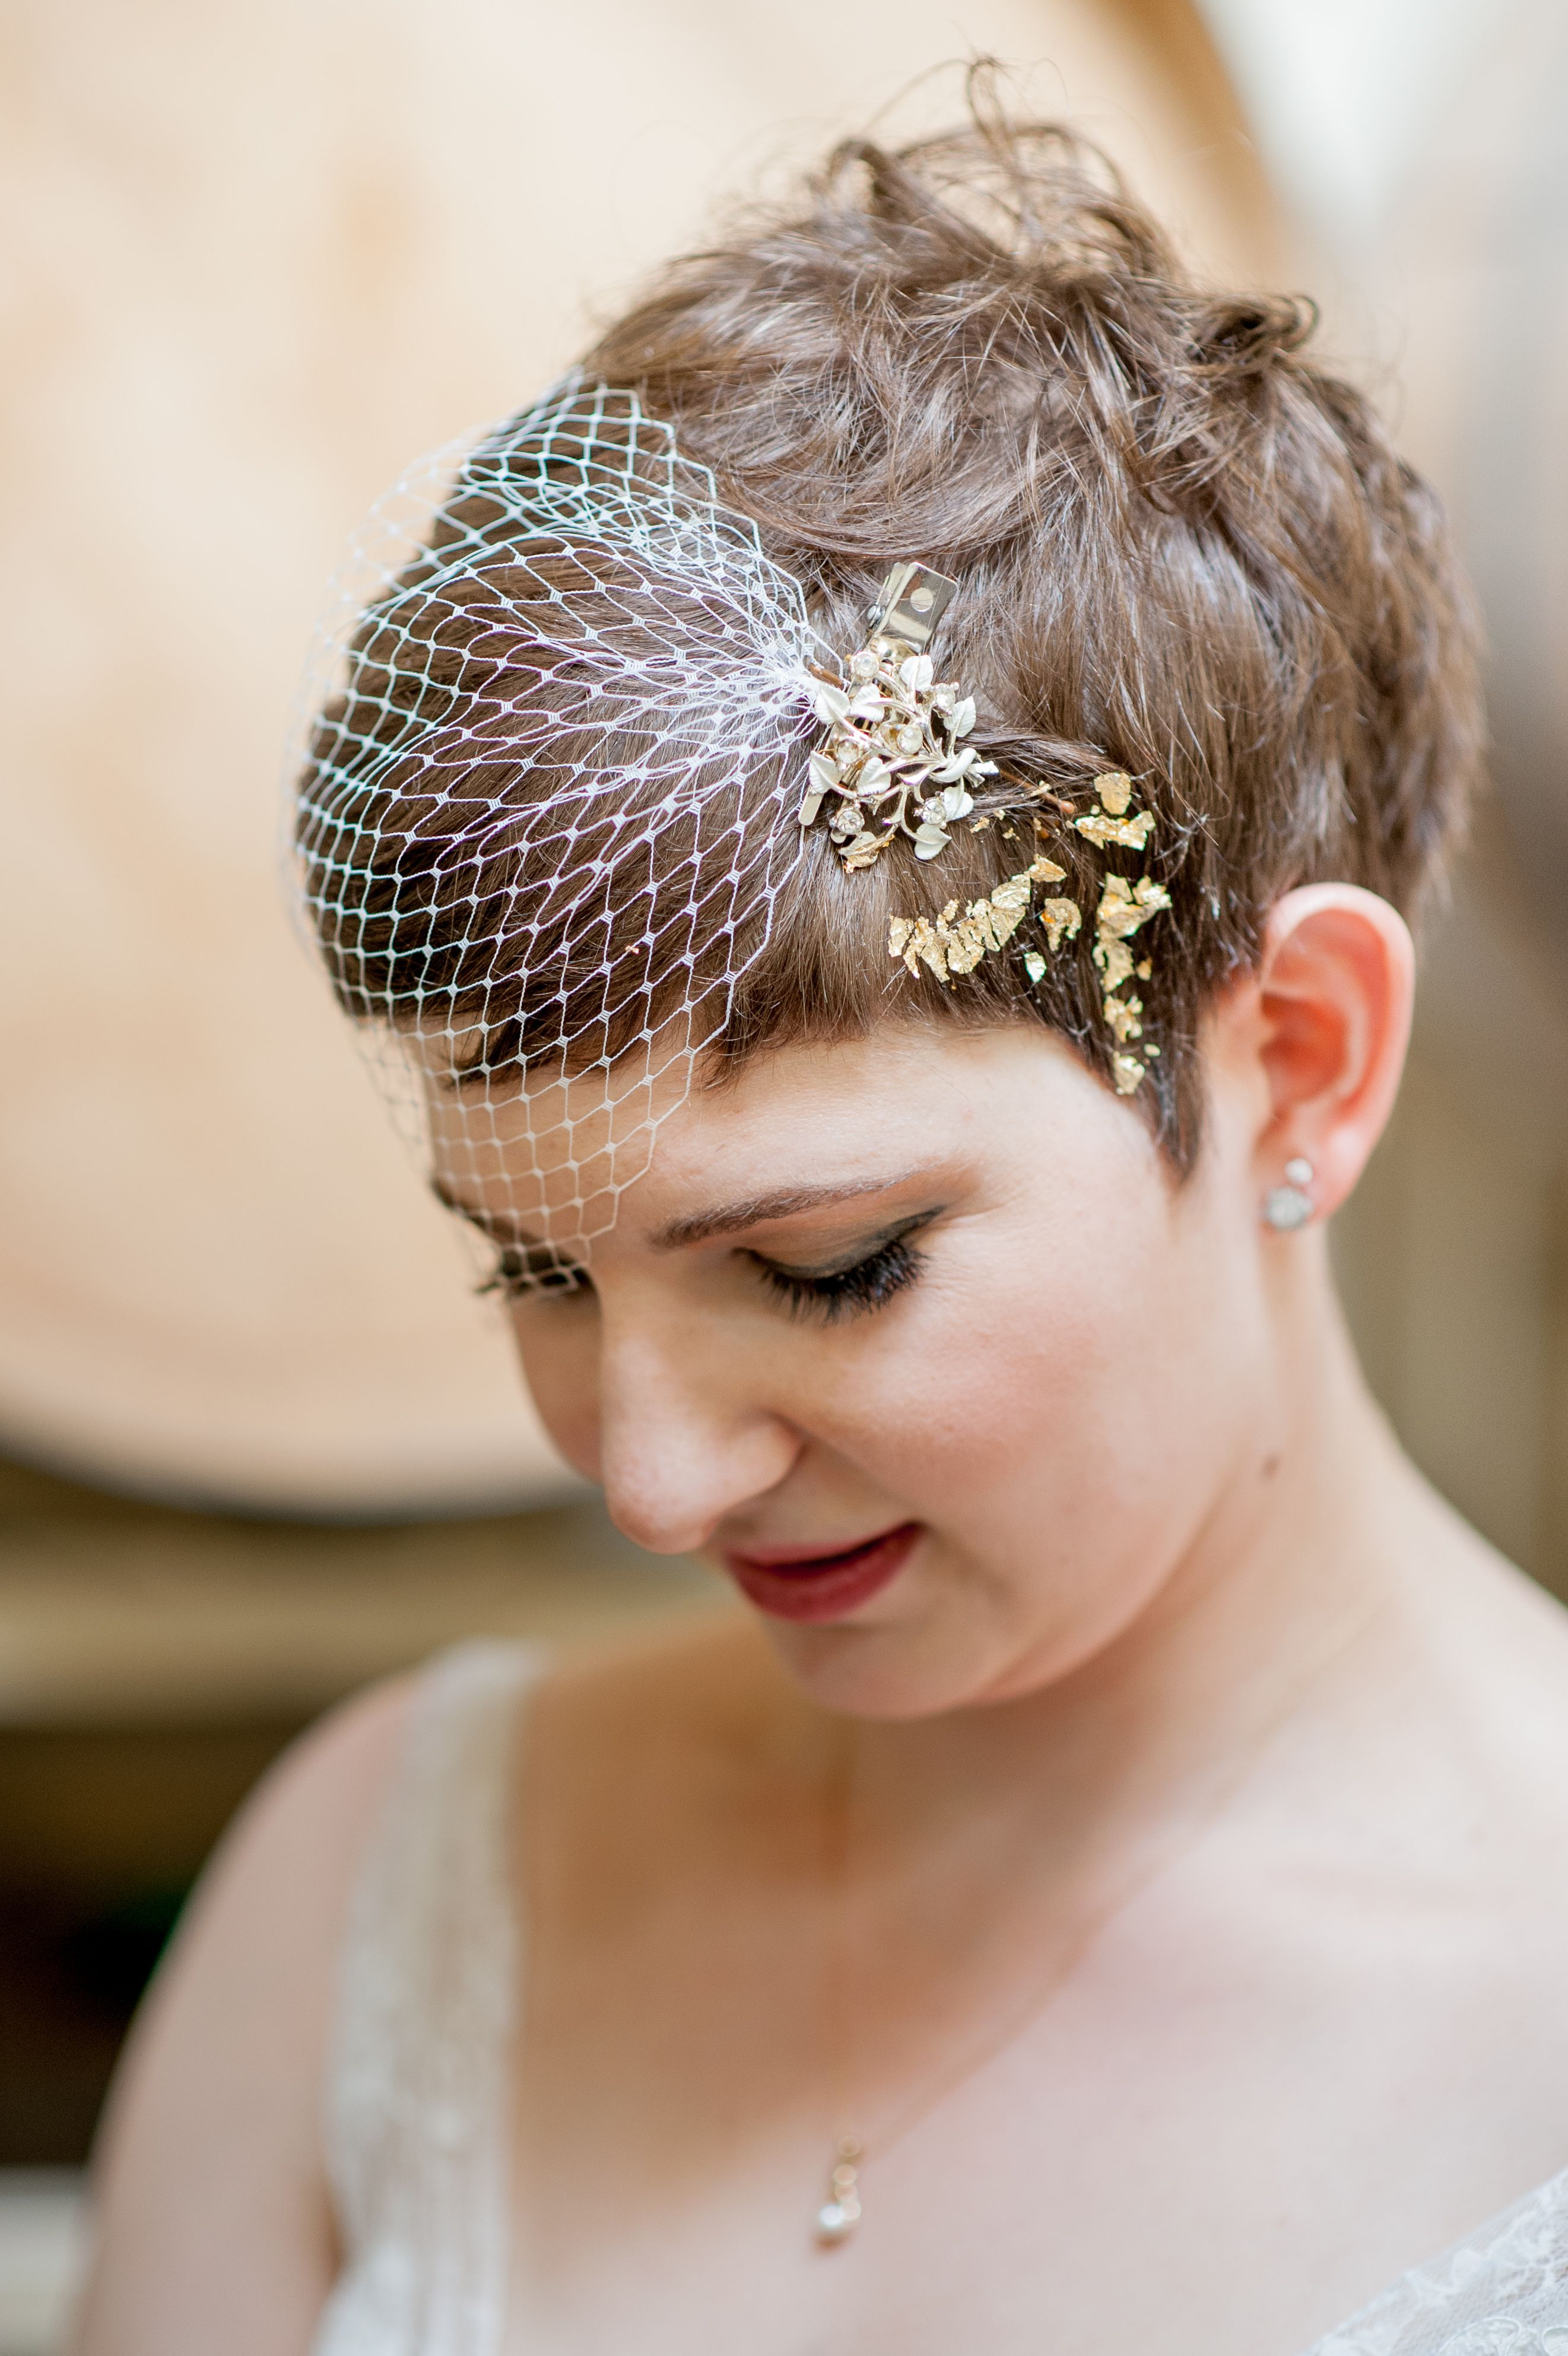 How To Diy A Gold Leafed Short Hair Style